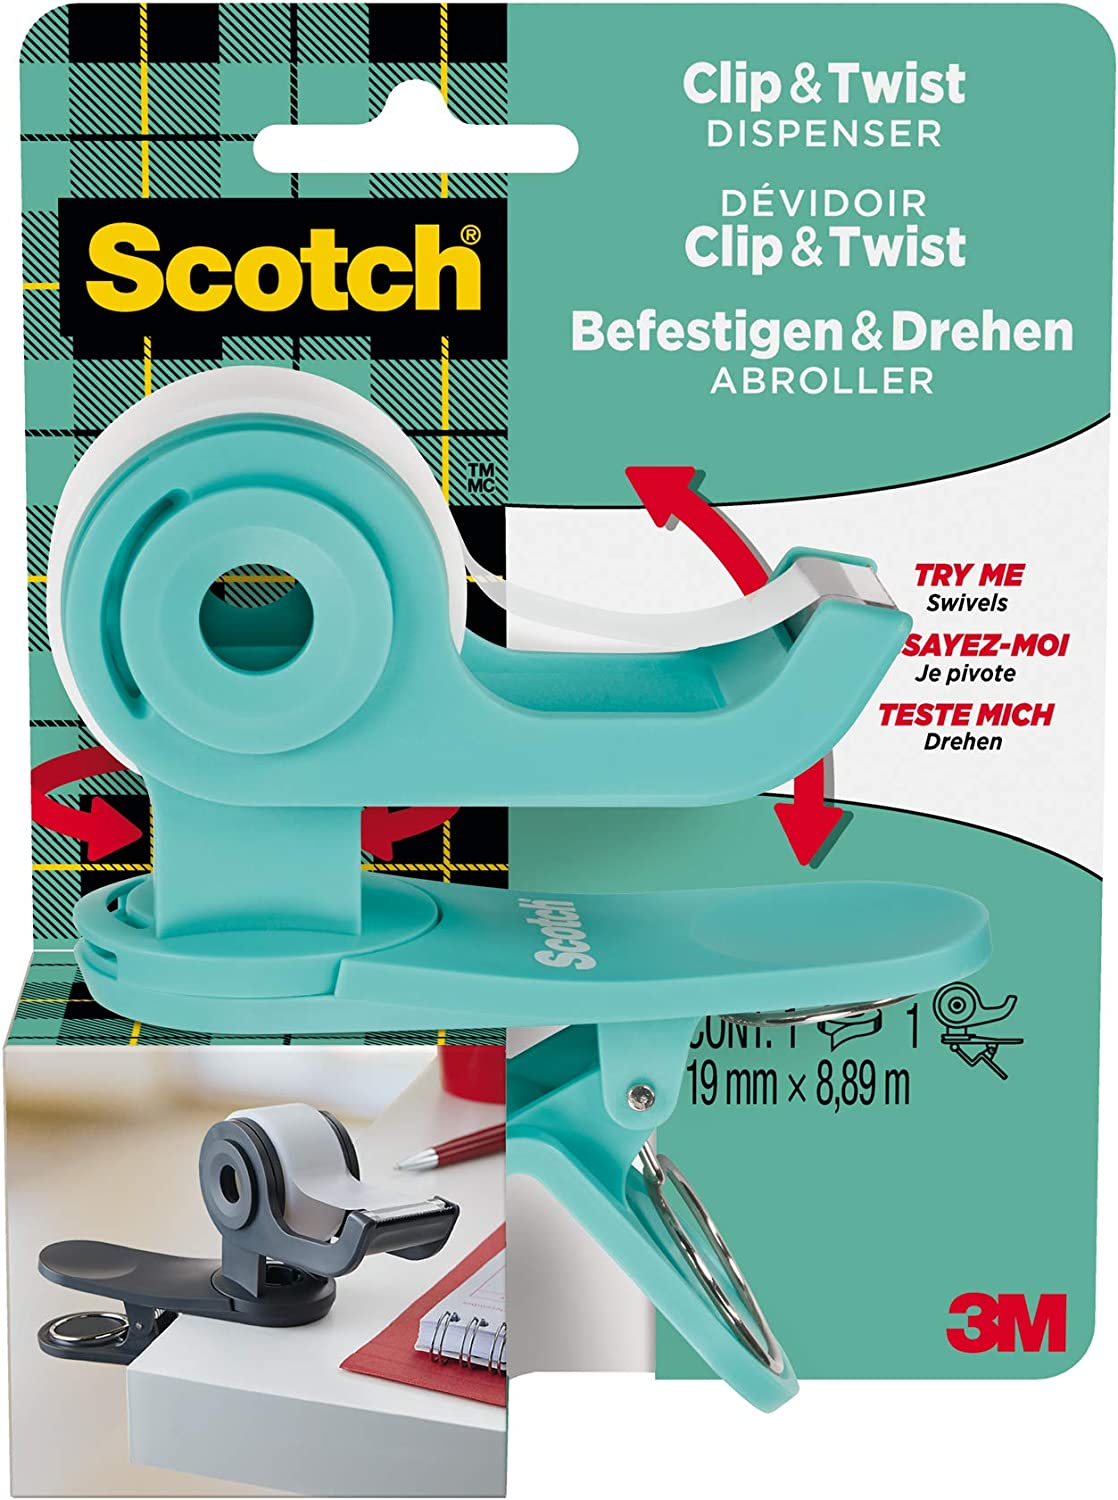 SCOTCH Adhesive Tape Dispenser C/&T Mint Green 1 Roll Included 19 x 9.8 m